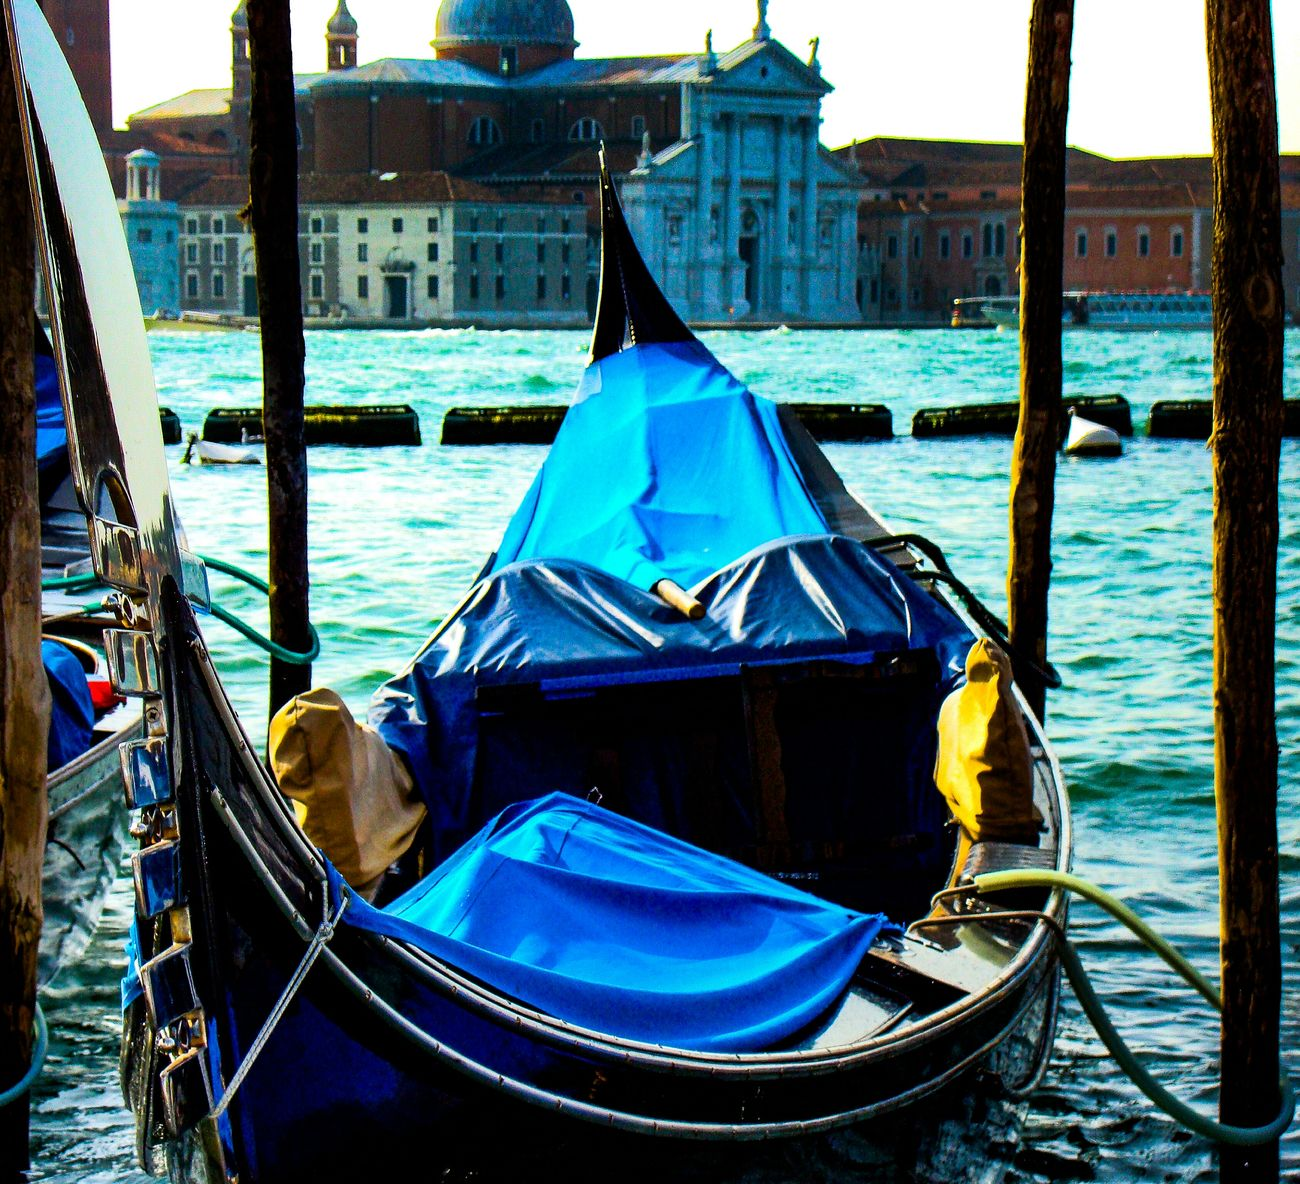 Venice Italy Gondolas Mode Of Transport No People Moored Gondola - Traditional Boat Architecture Water Outdoors Canals Venice Seascapes Canals And Waterways Tourism Day Transportation Canal Grande Beauty In Nature Italiano Landscape_Collection Transportation Venetian Travel Destinations Italy Holidays Gondolas Venice Gondola